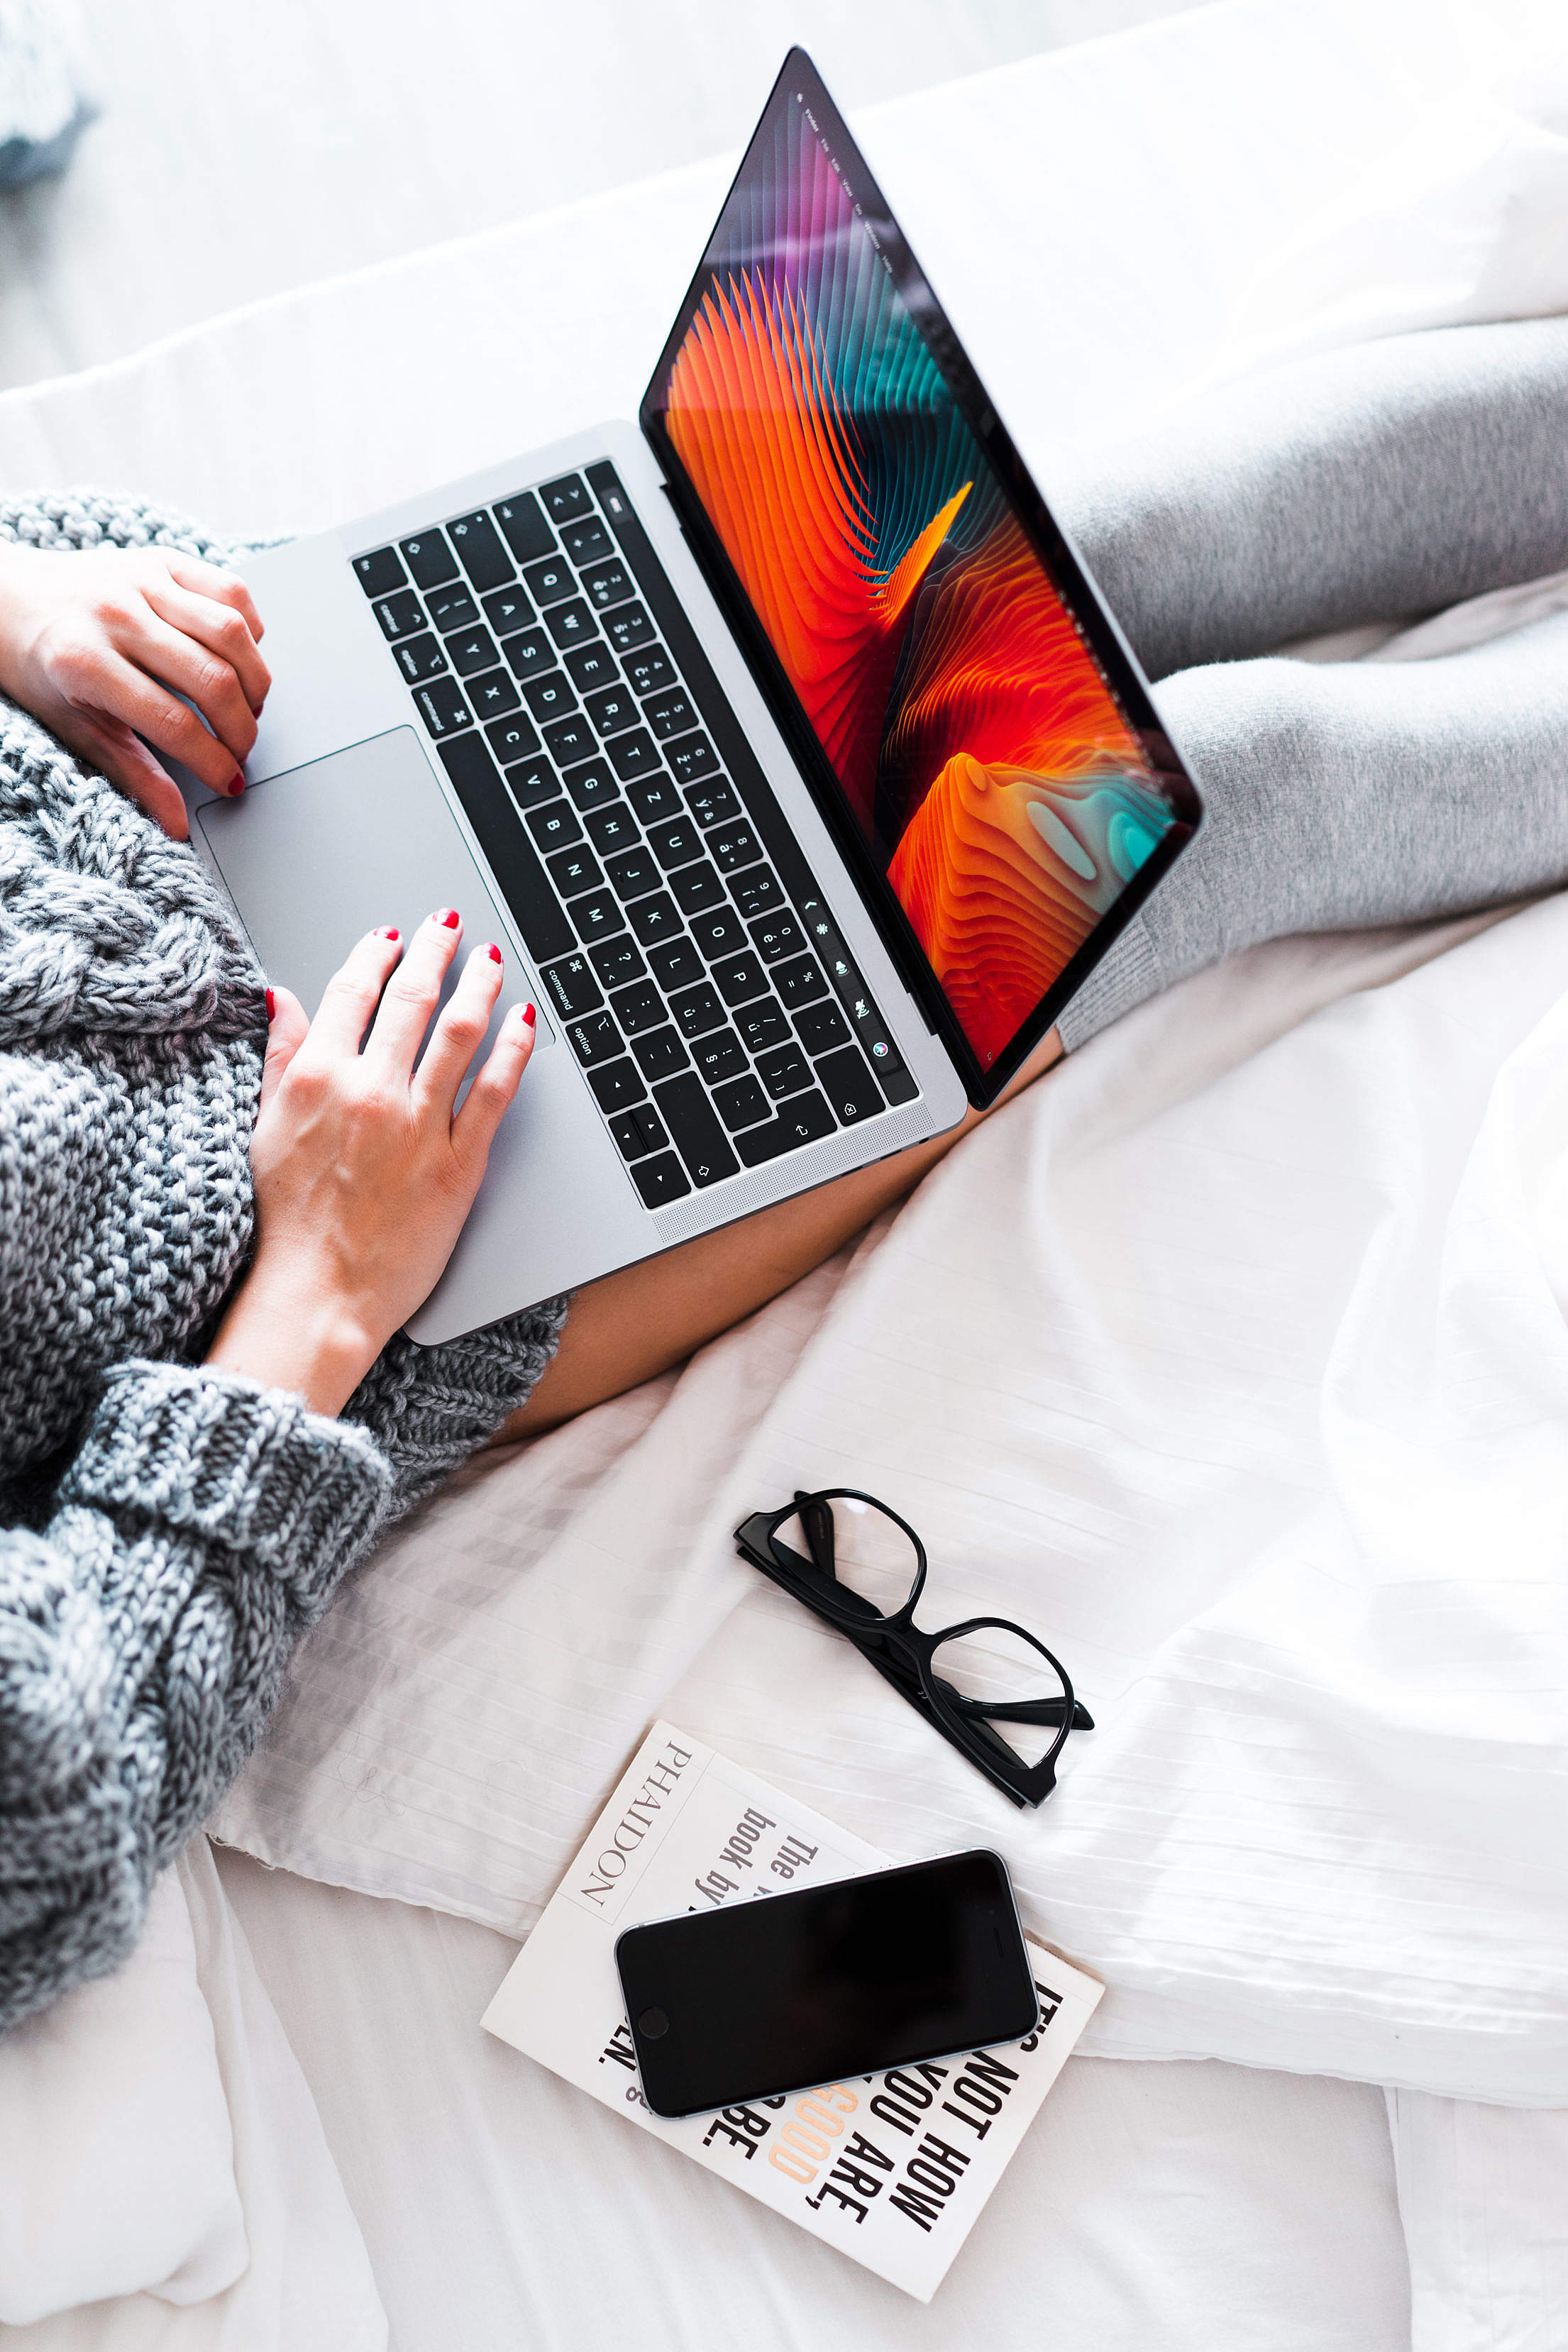 Download Woman Using Her New MacBook in Bed Free Stock Photo